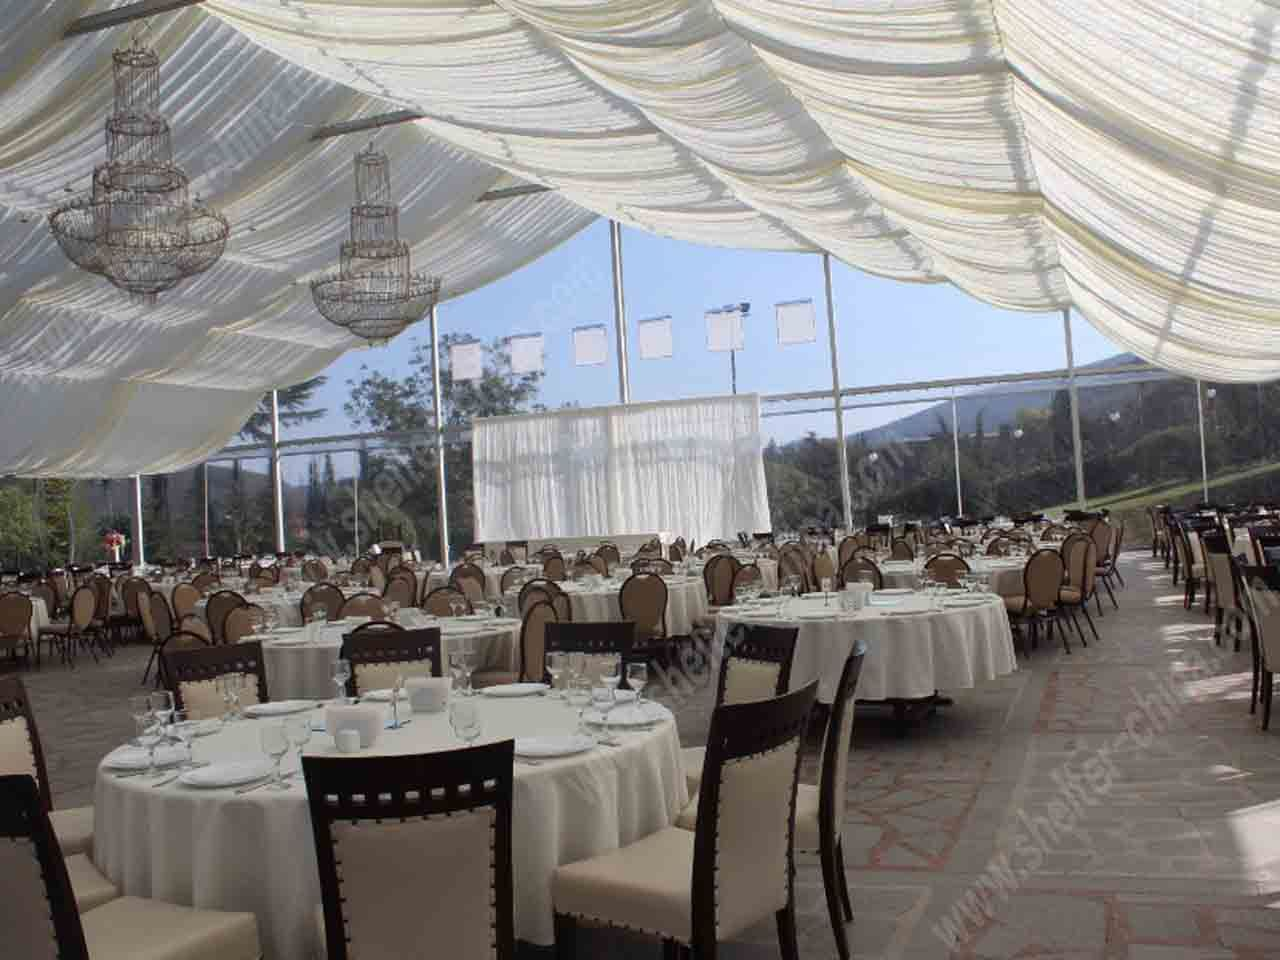 Wedding tent decorations ceiling google search wedding marquee wedding tent decorations ceiling google search wedding marquee decor pinterest wedding tent decorations tent decorations and weddings junglespirit Gallery